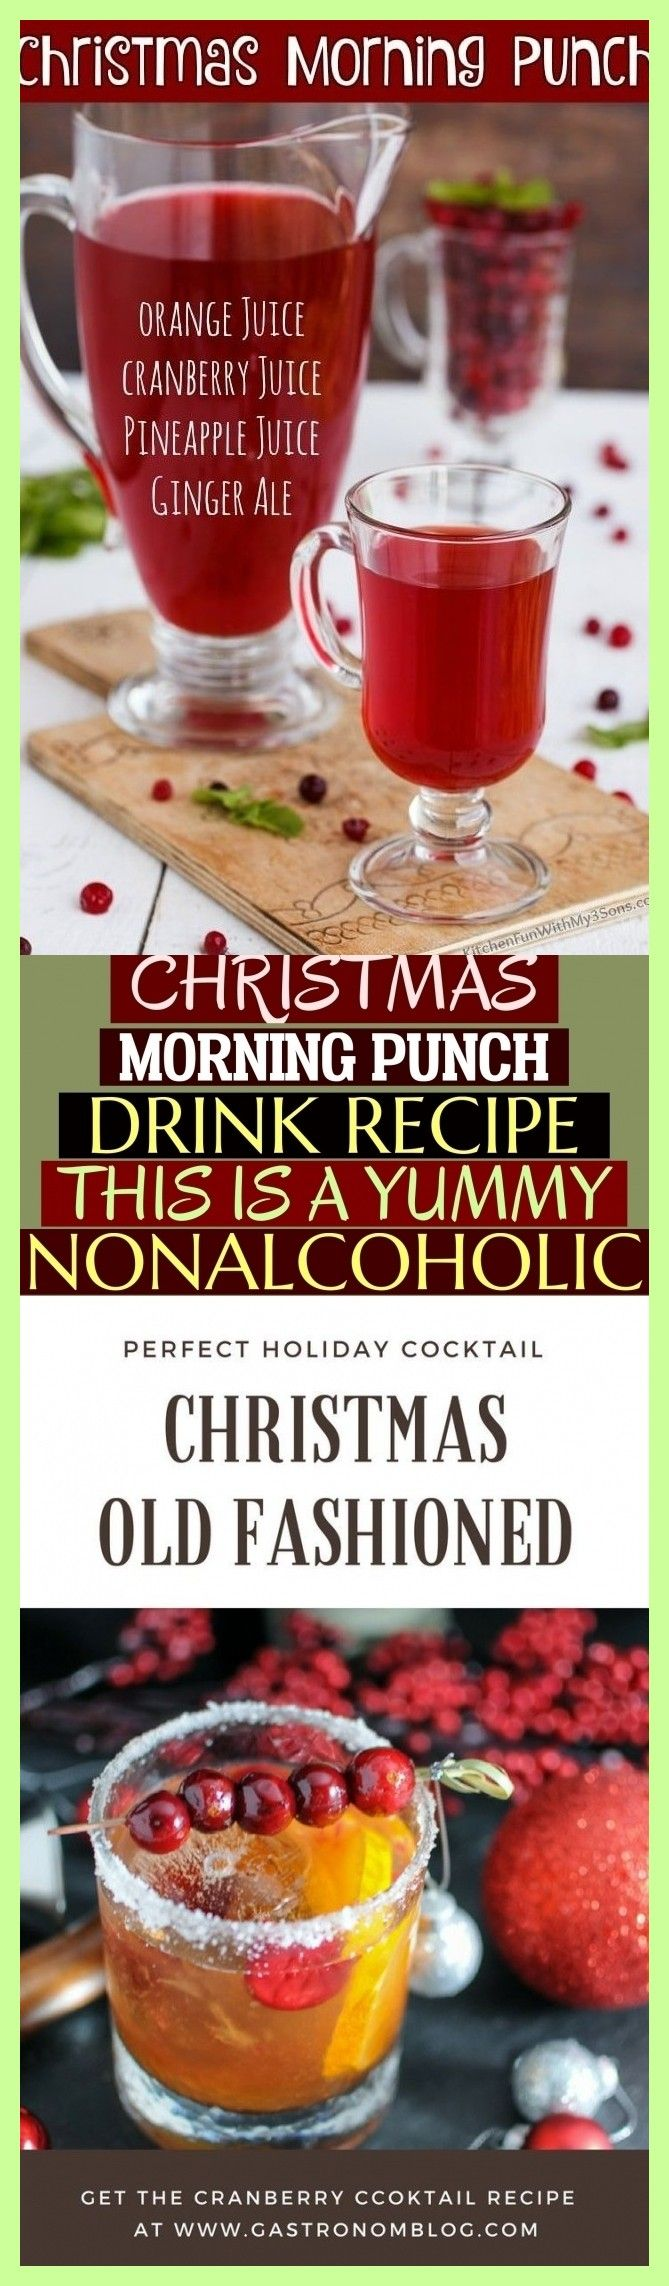 More Than 42  Christmas Morning Punch Drink Recipe This Is A Yummy Non-Alcoholic ! Christmas Morning Punch drink recipe. This is a yummy non-alcoholic Christmas drink that everyone can enjoy. #christmas #drink #recipes #cranberry ! #christmas #drink #recipes #cranberry #christmasmorningpunch